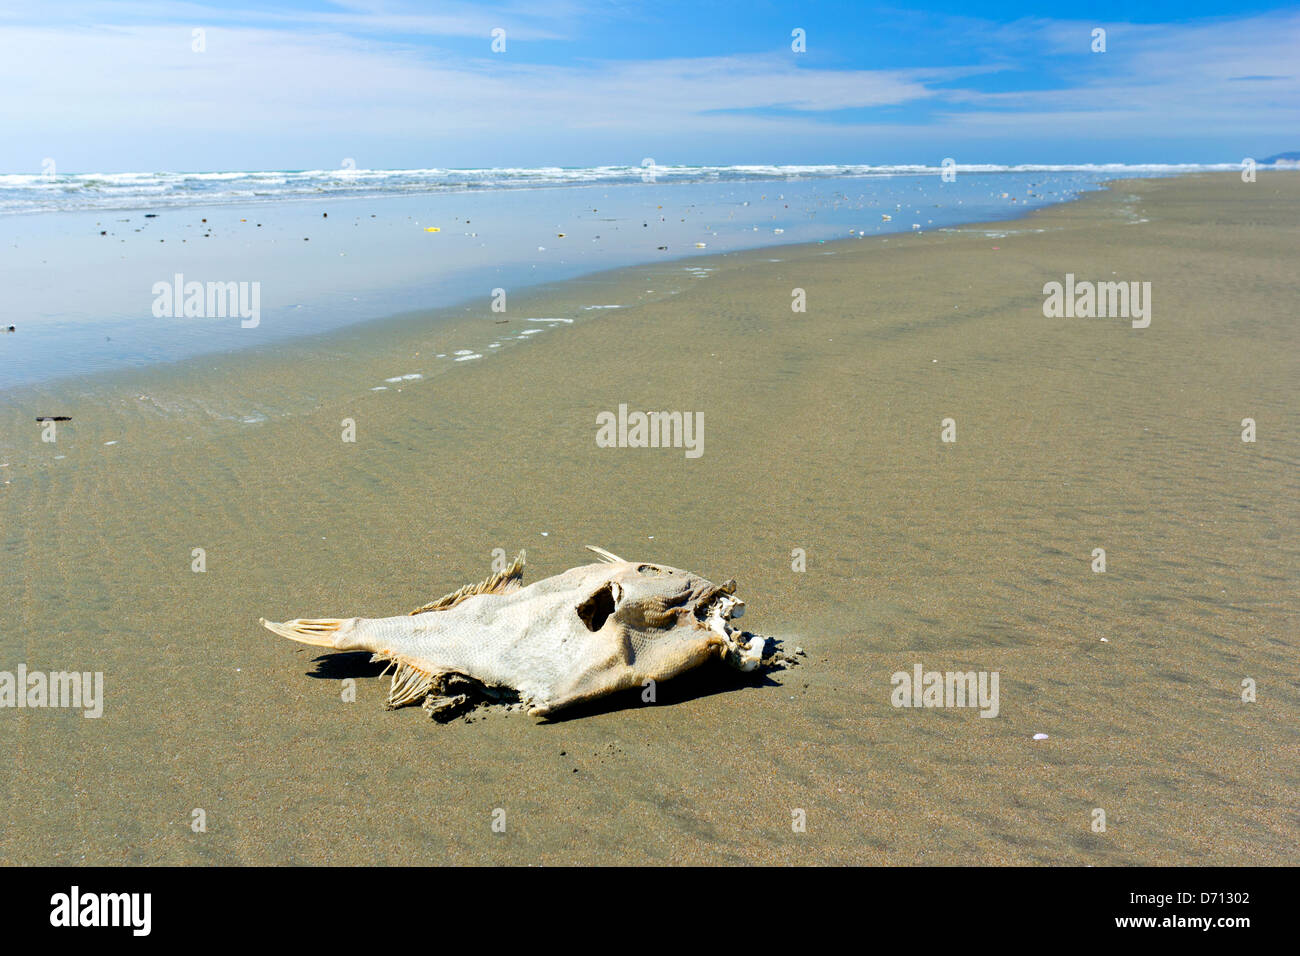 Dead fish on a beach on the pacific coast of ecuador stock photo dead fish on a beach on the pacific coast of ecuador publicscrutiny Images